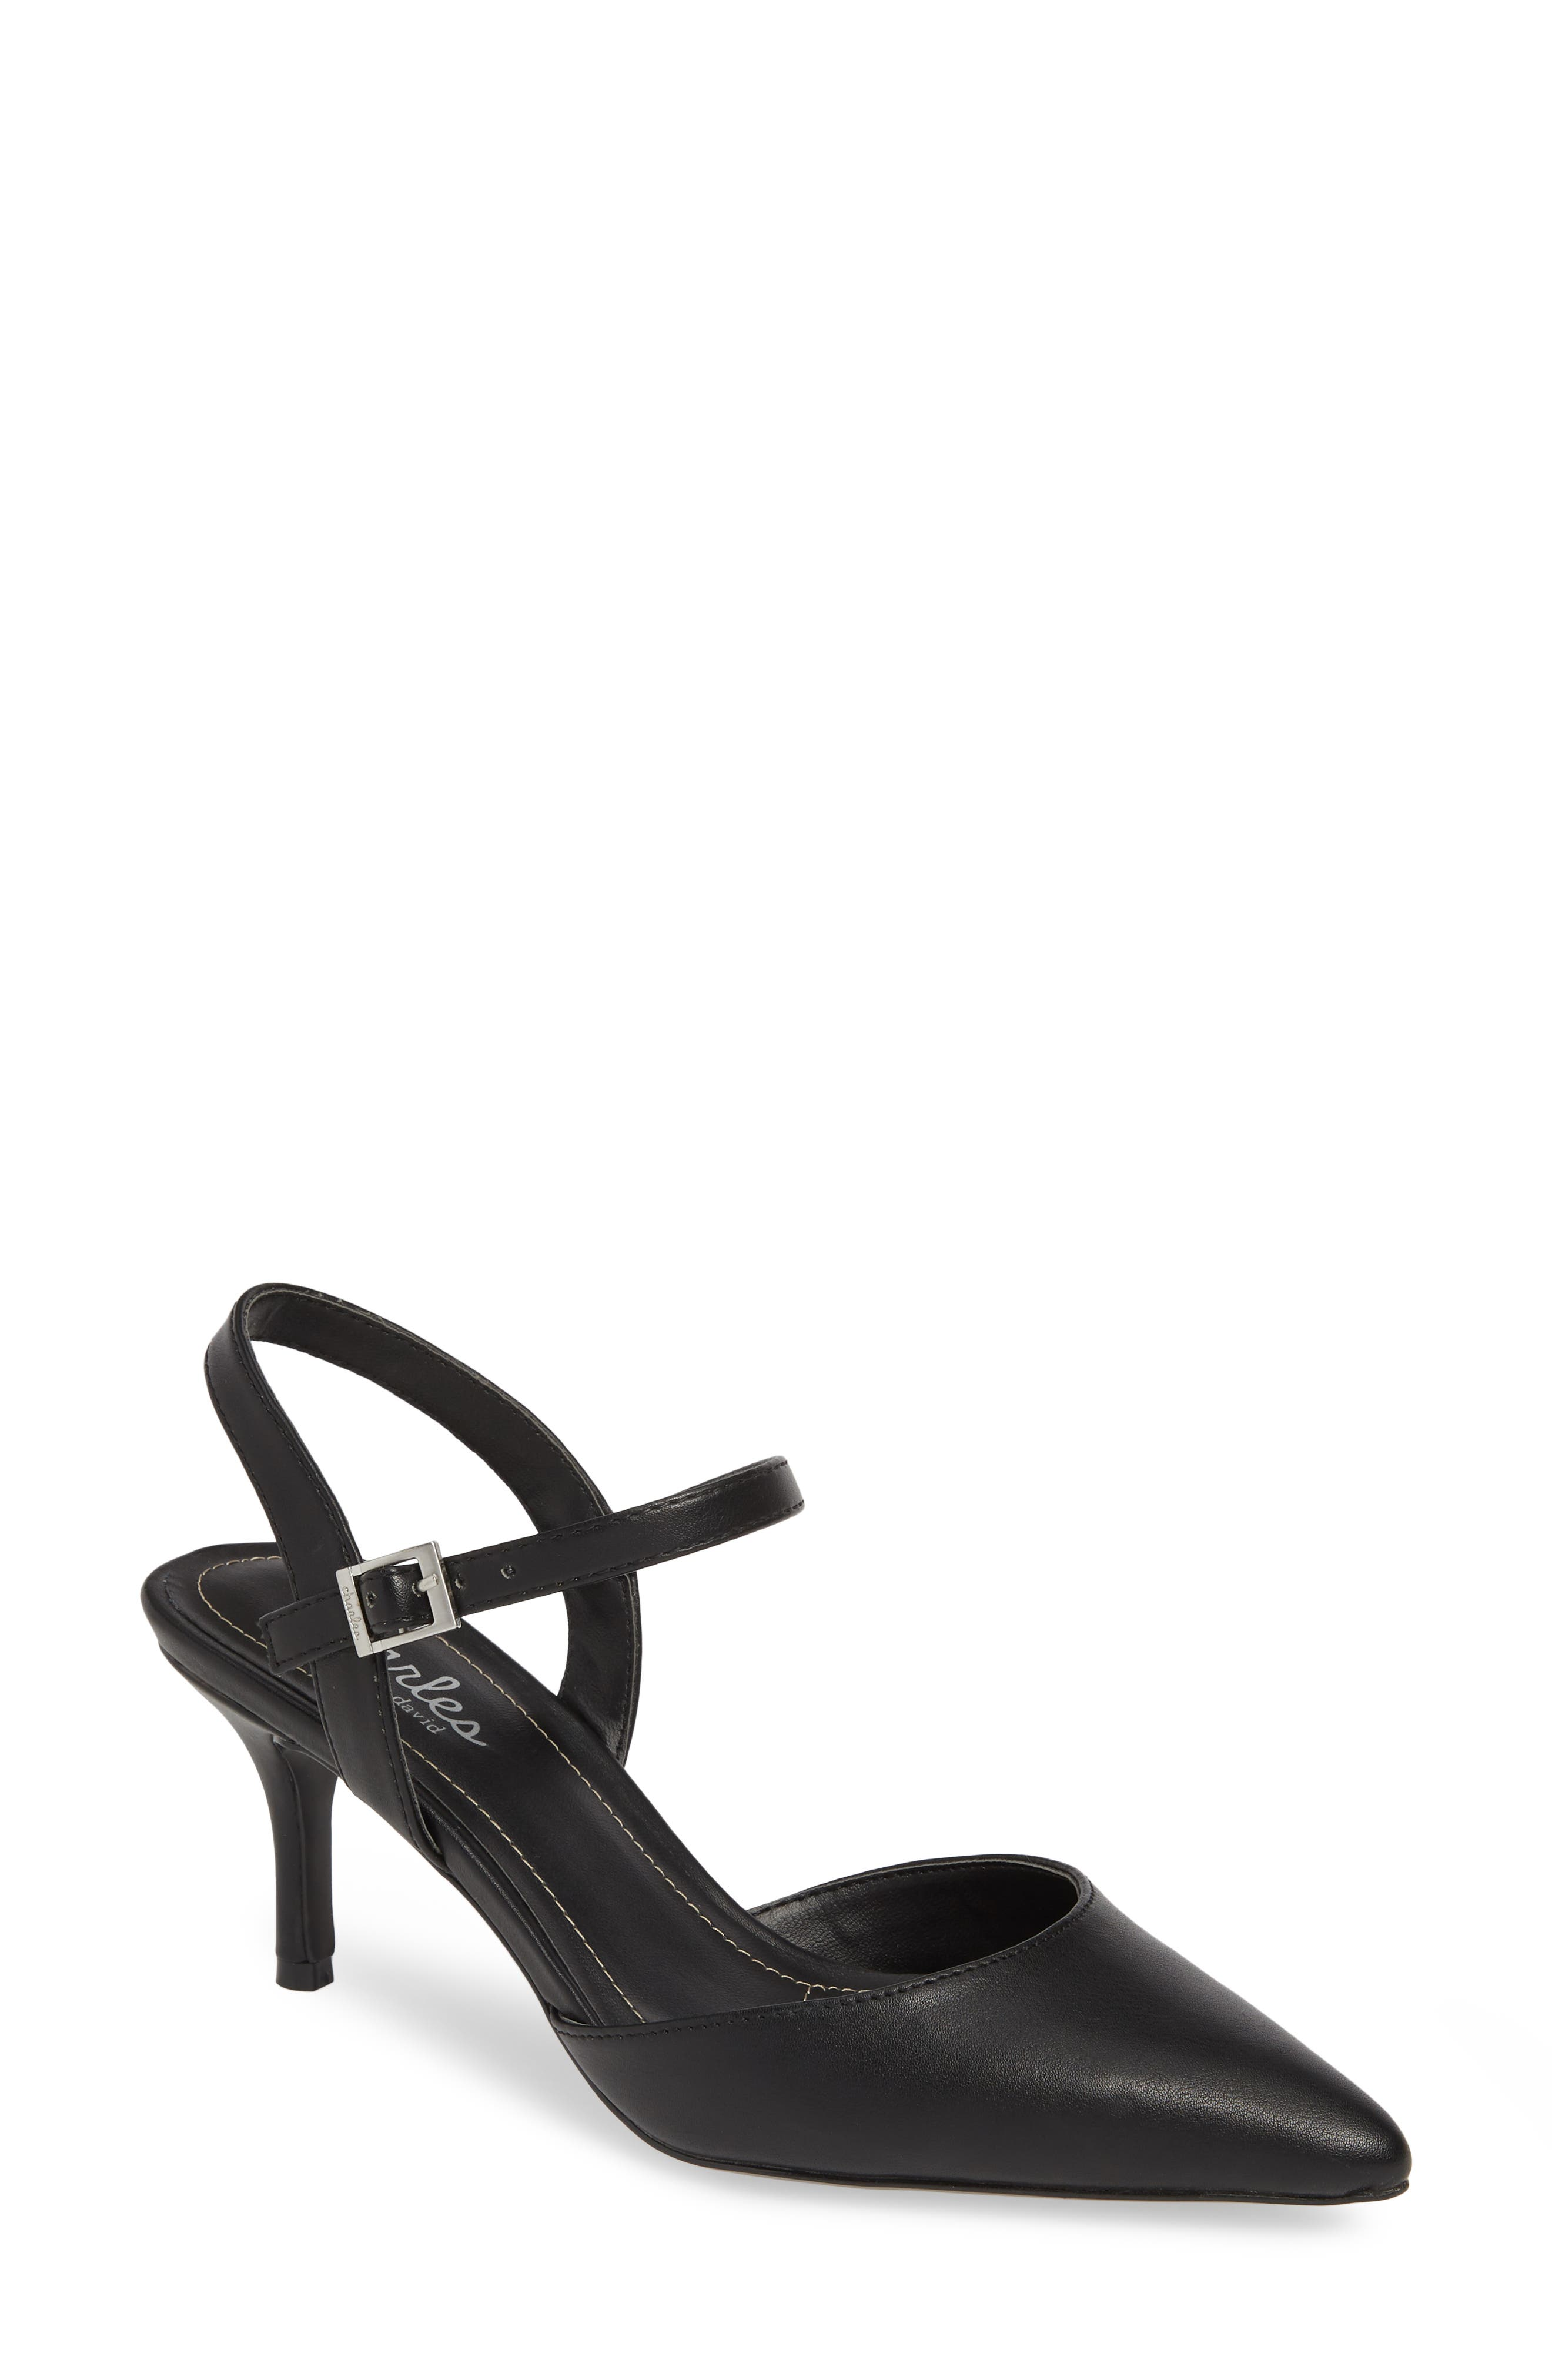 CHARLES BY CHARLES DAVID, Ankle Strap Pump, Main thumbnail 1, color, BLACK FAUX LEATHER